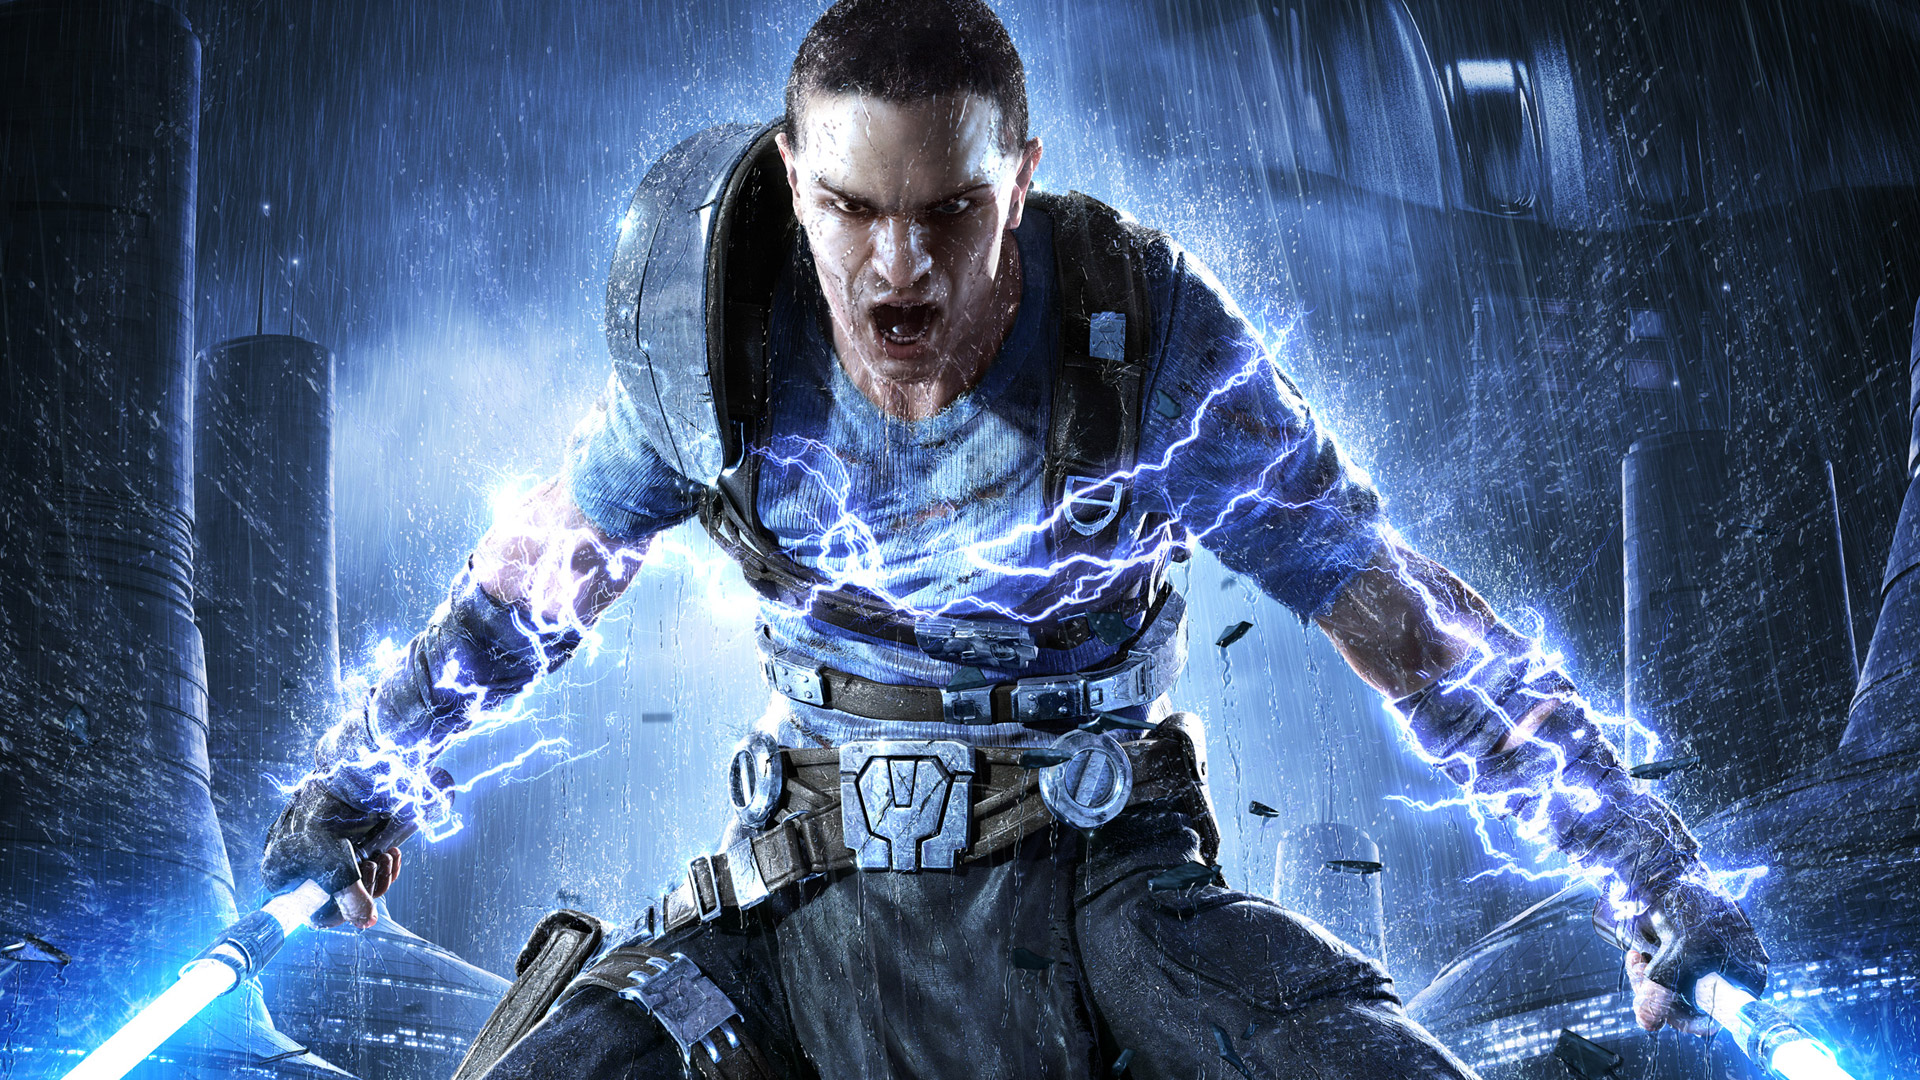 Star Wars: The Force Unleashed II Wallpaper in 1920x1080